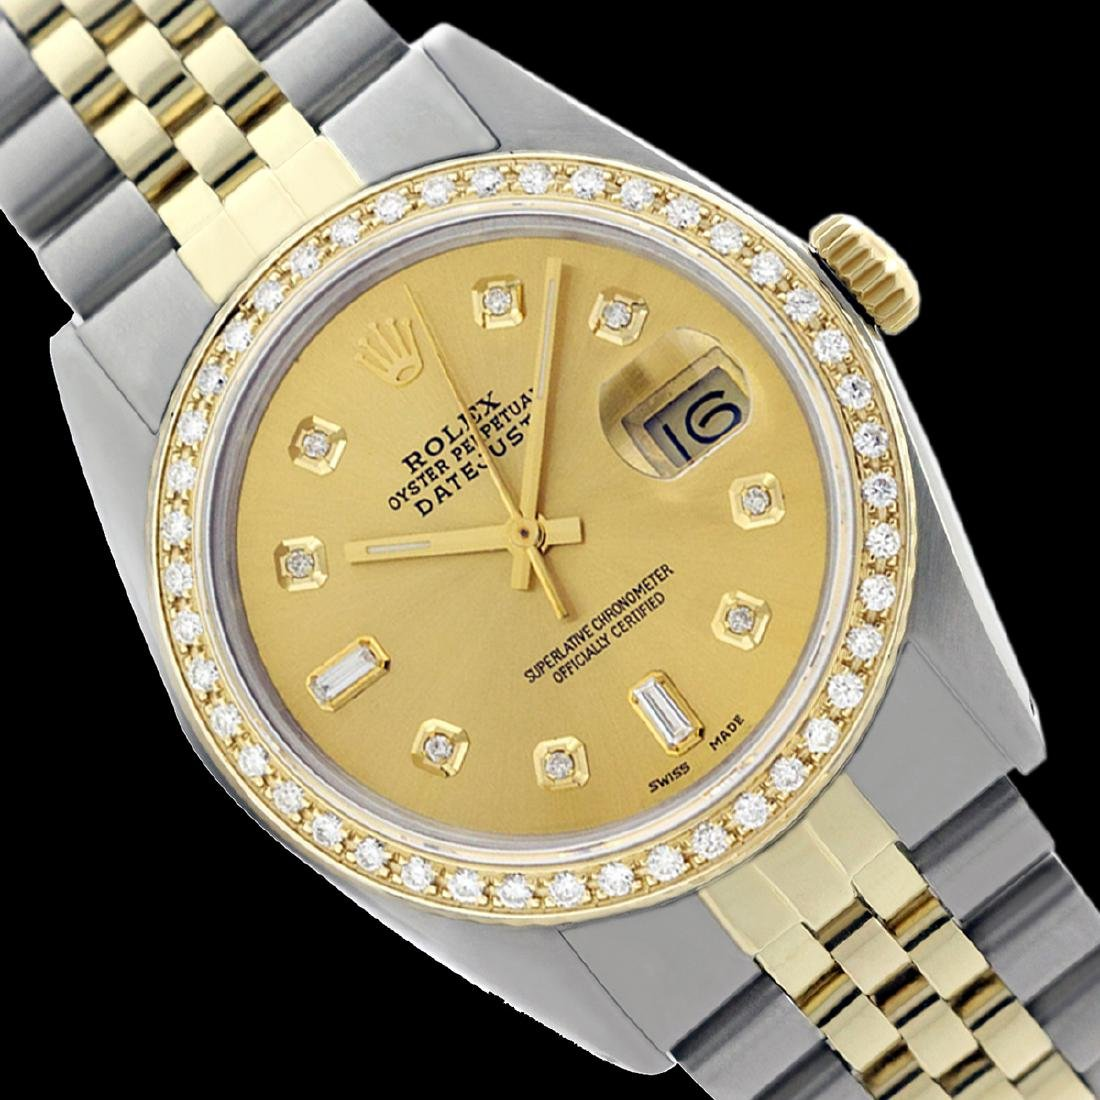 Rolex Men's Two Tone 14K Gold/SS , QuickSet, Diamond